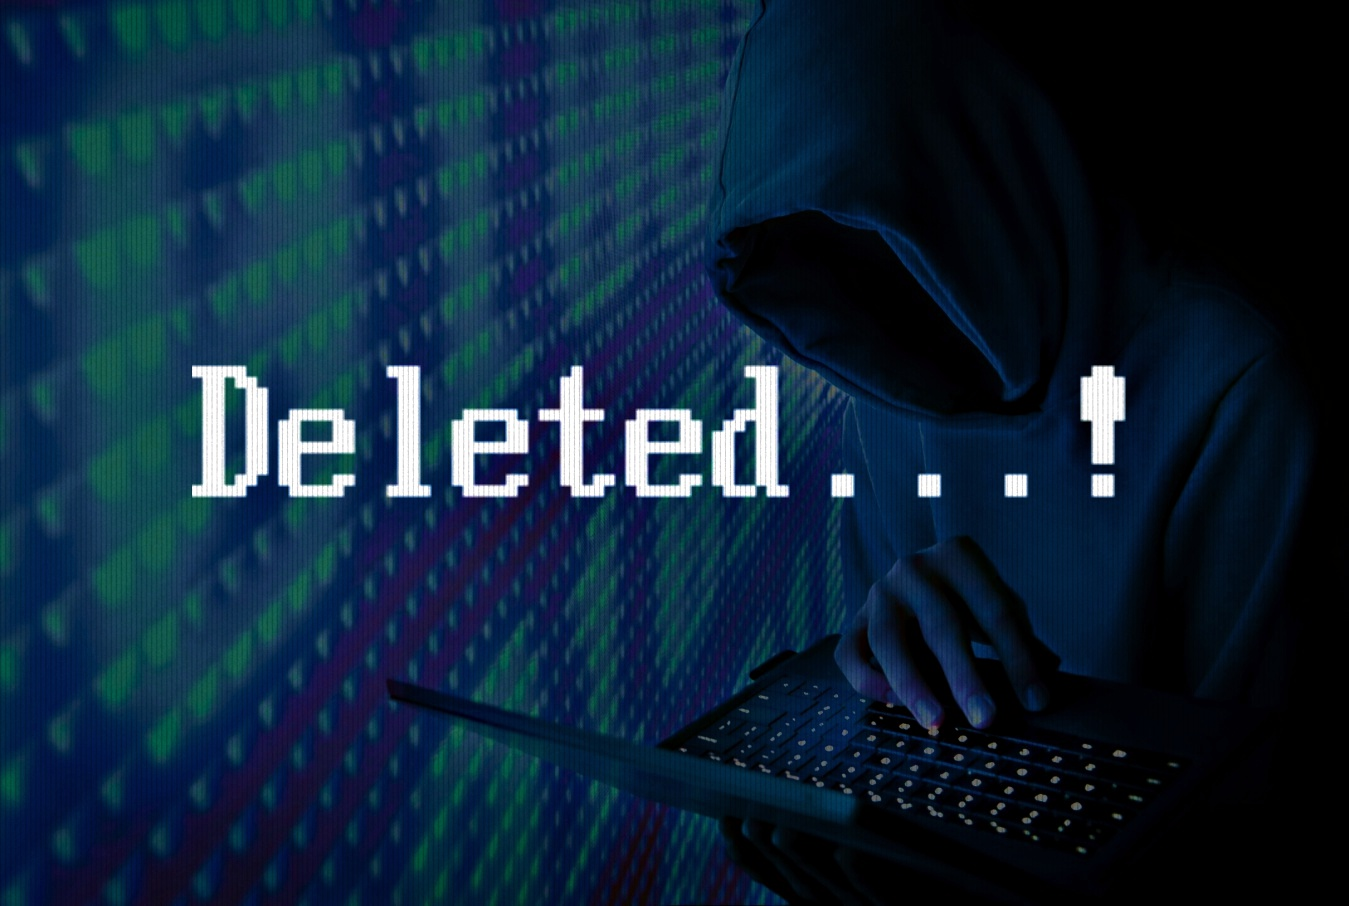 Email-provider-loses-2-decades-worth-of-data-due-to-hack-attack